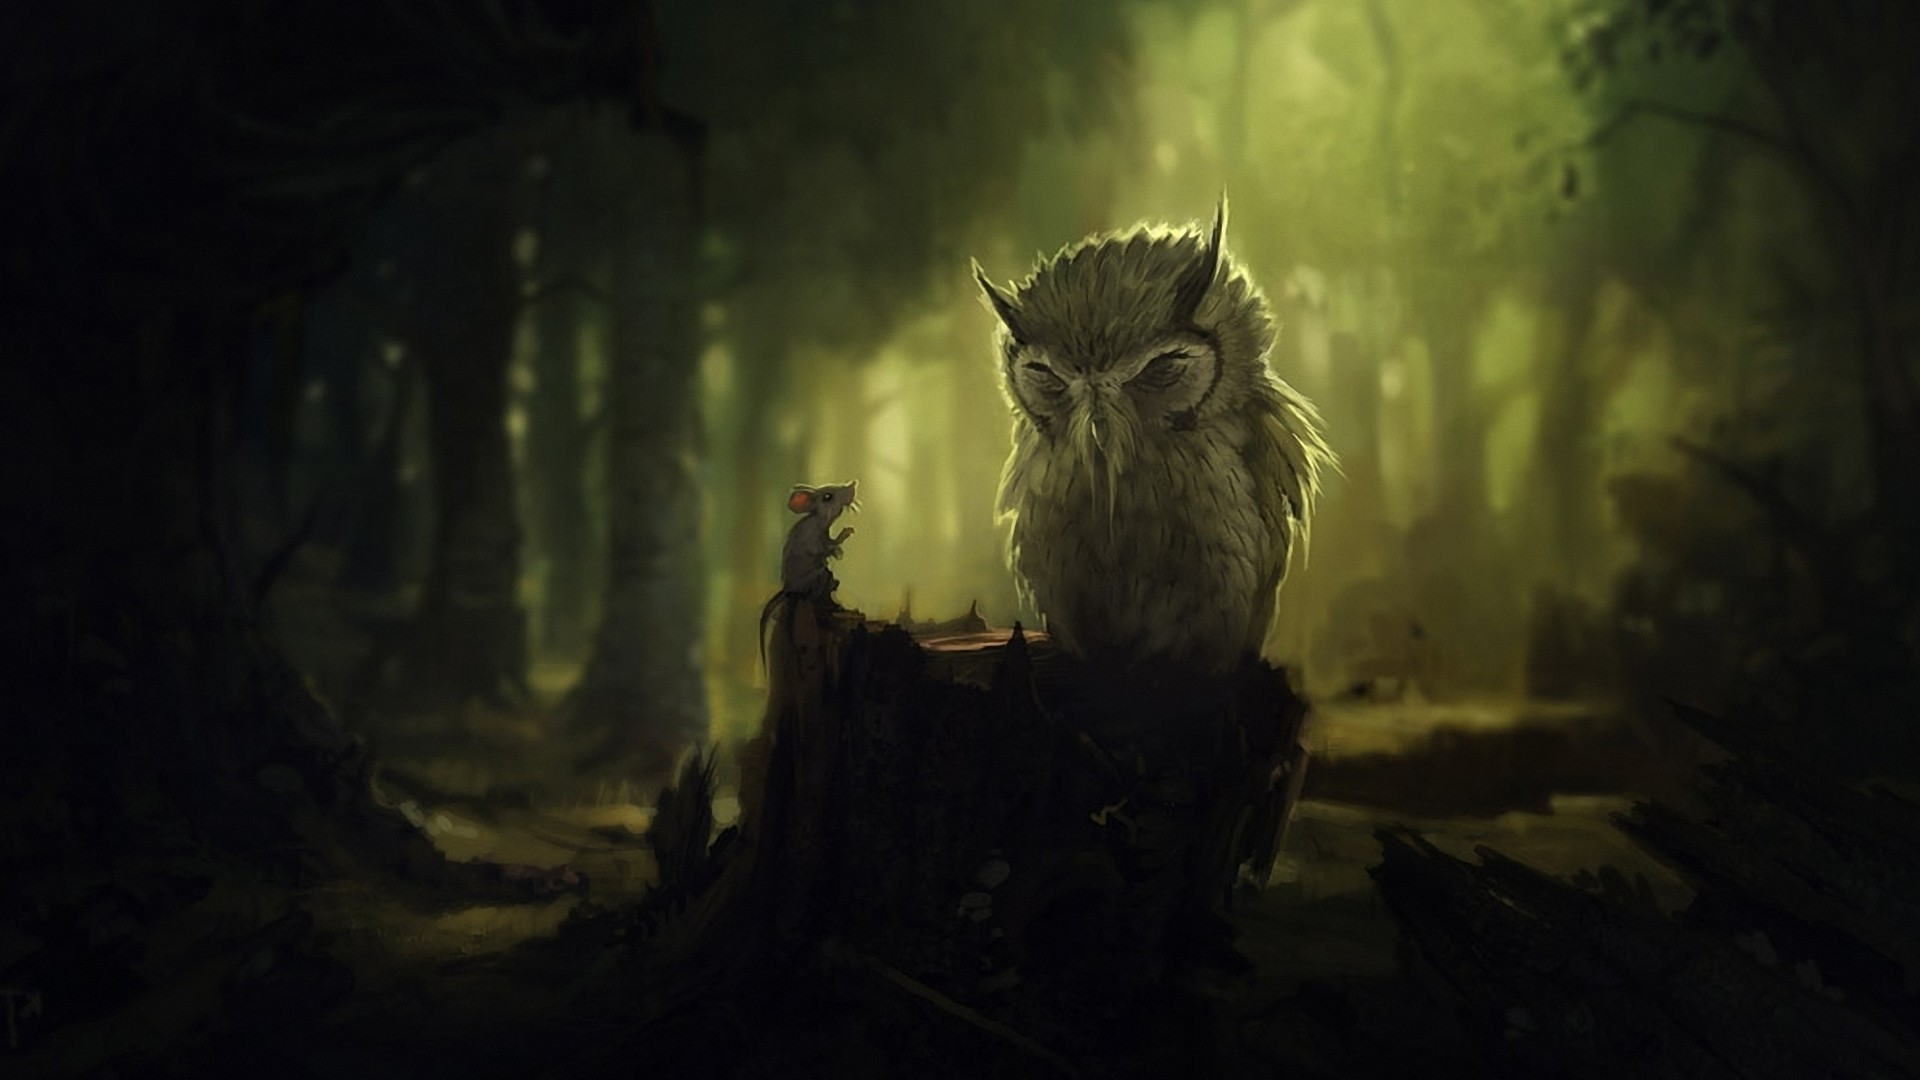 Dark Forest Windows 81 Theme and Wallpaper All for Windows 10 1920x1080